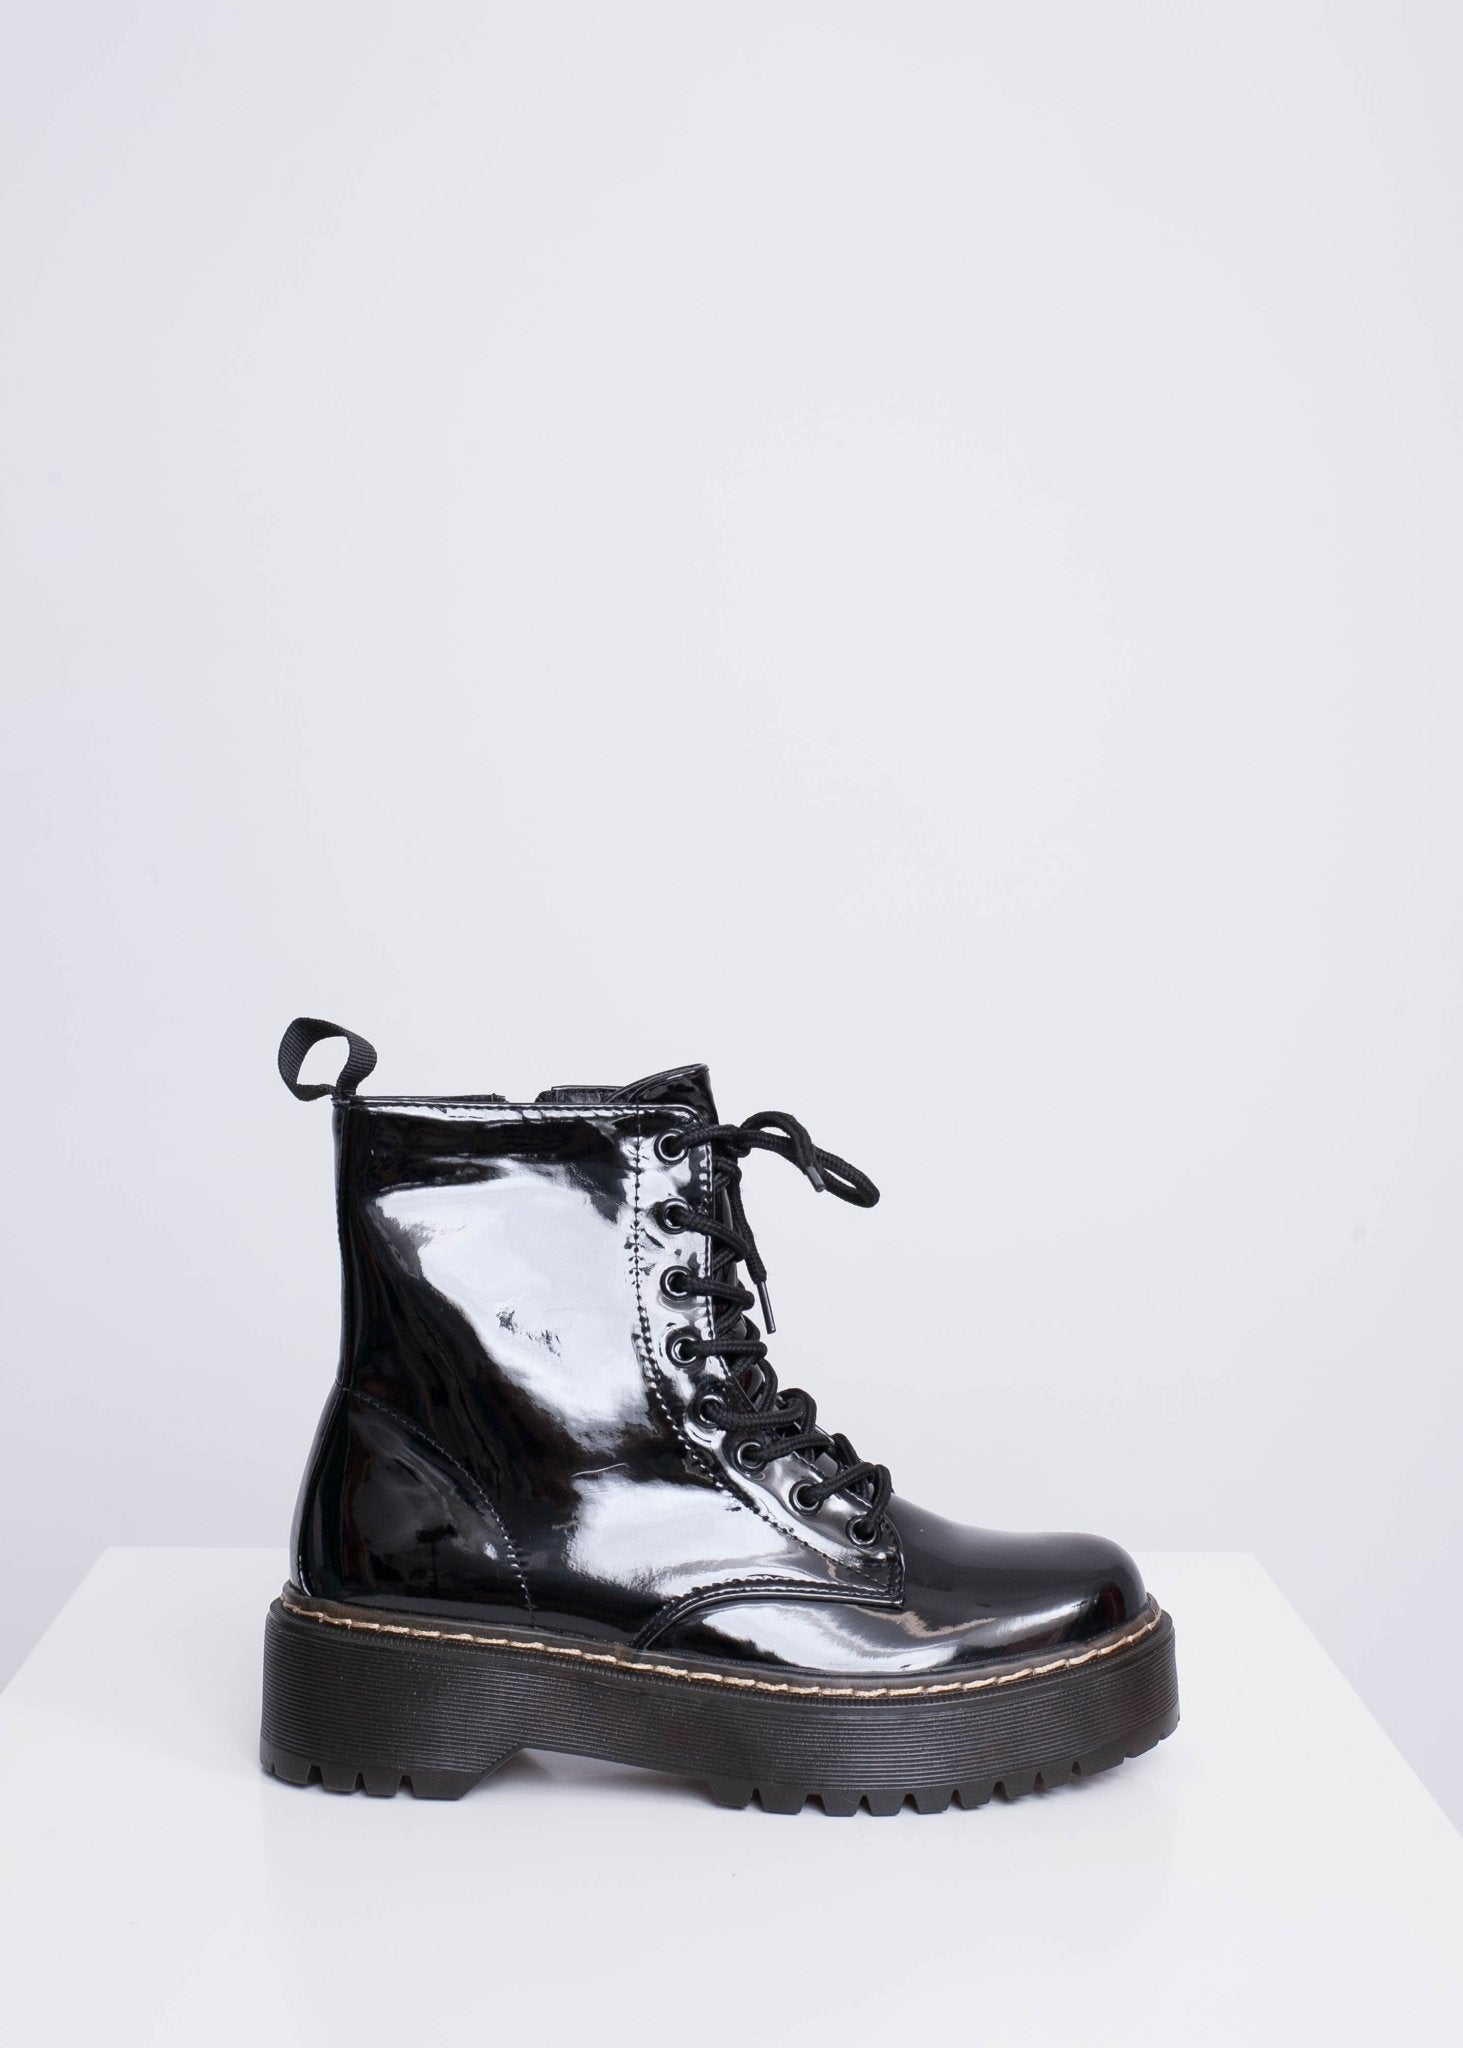 Priya Black Biker Boots - The Walk in Wardrobe